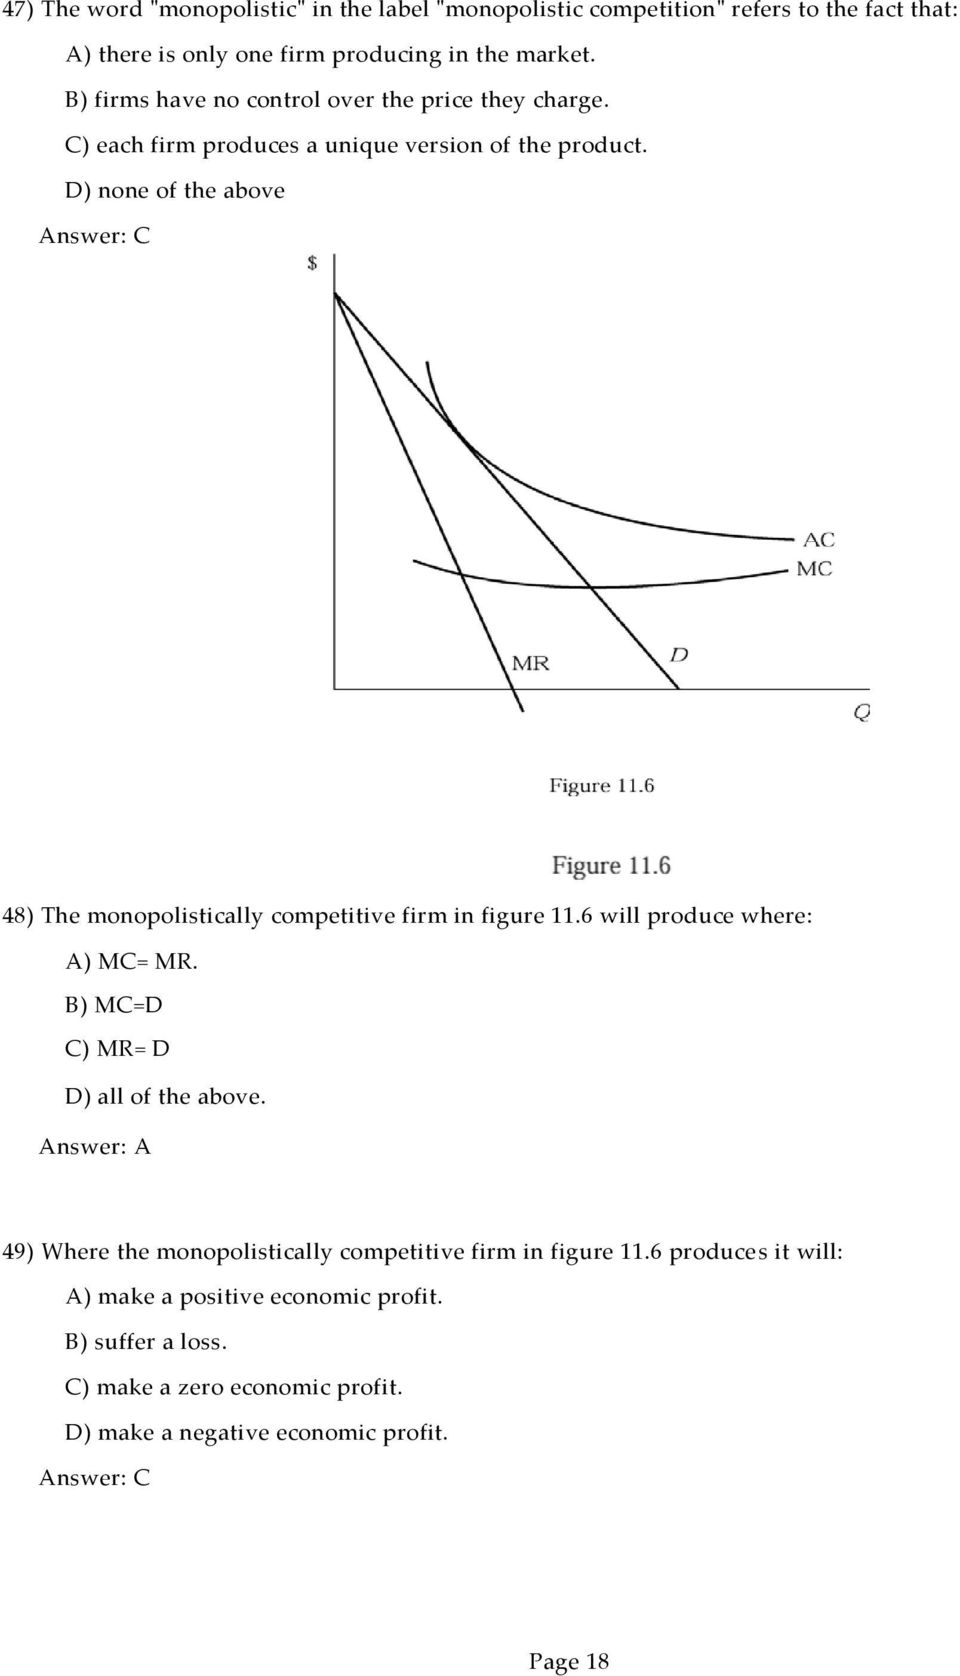 D) none of the above 48) The monopolistically competitive firm in figure 11.6 will produce where: A) MC= MR. B) MC=D C) MR= D D) all of the above.